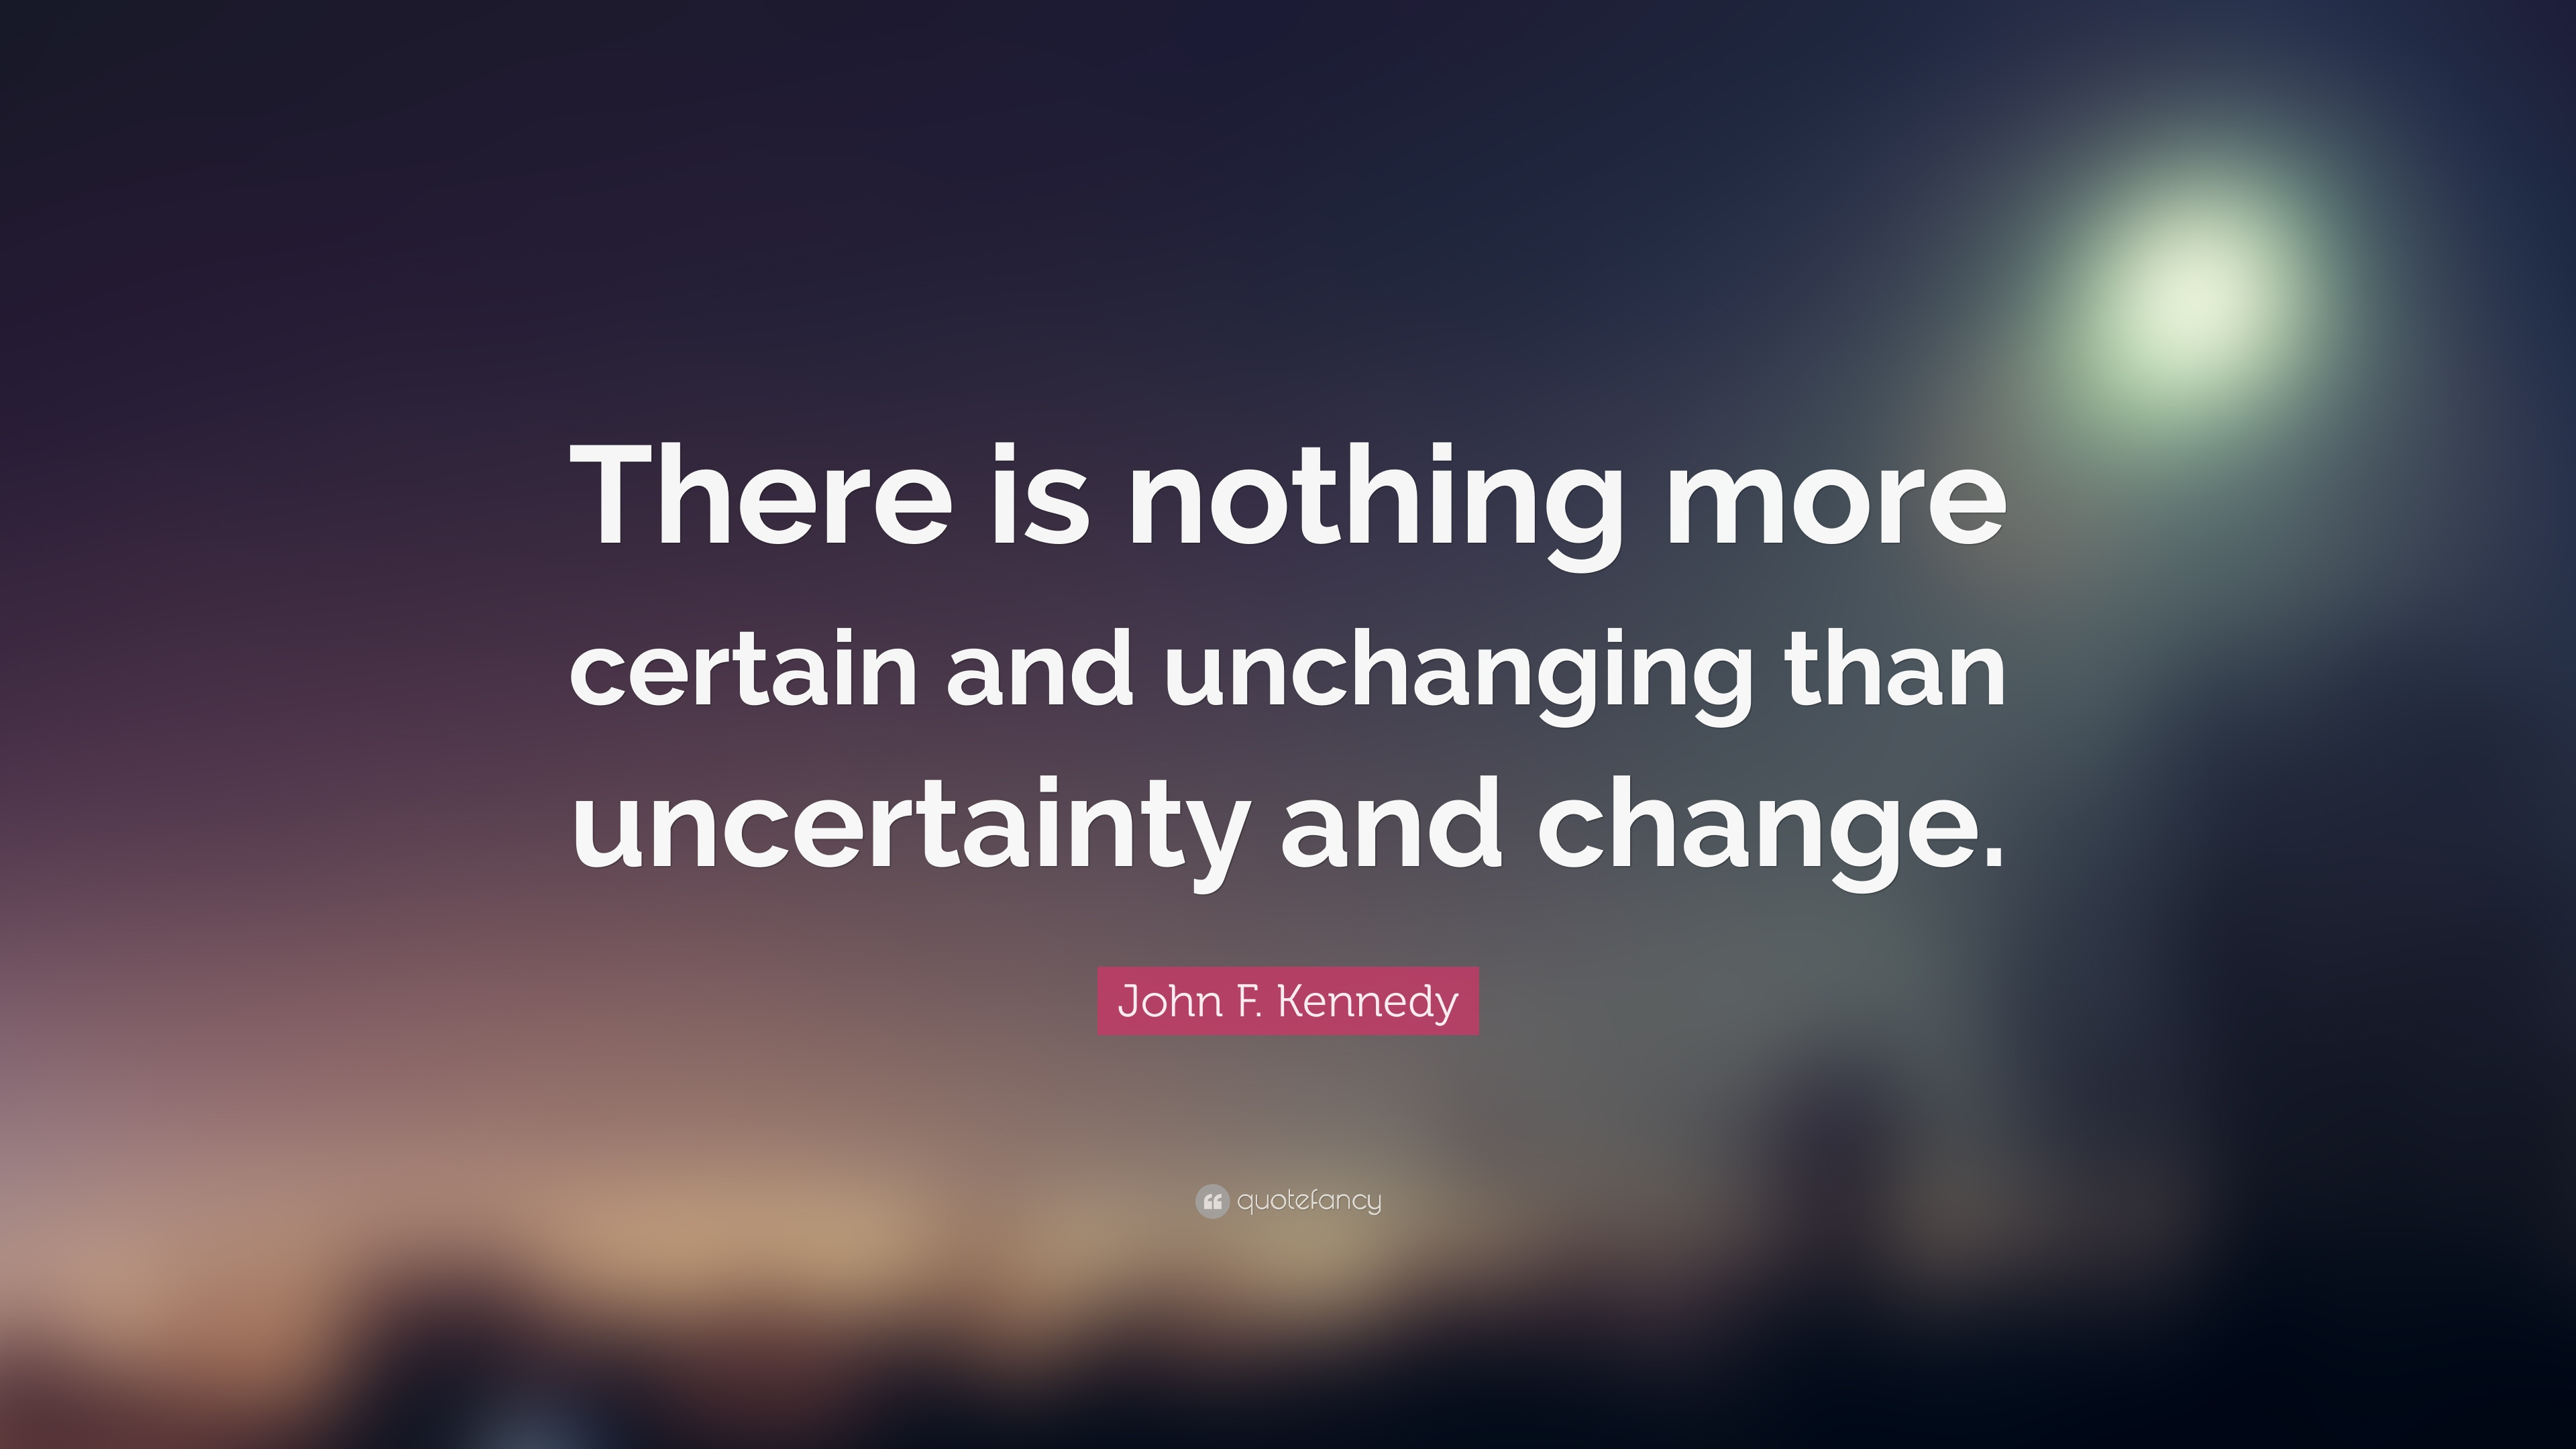 John F Kennedy Quote There Is Nothing More Certain And Unchanging